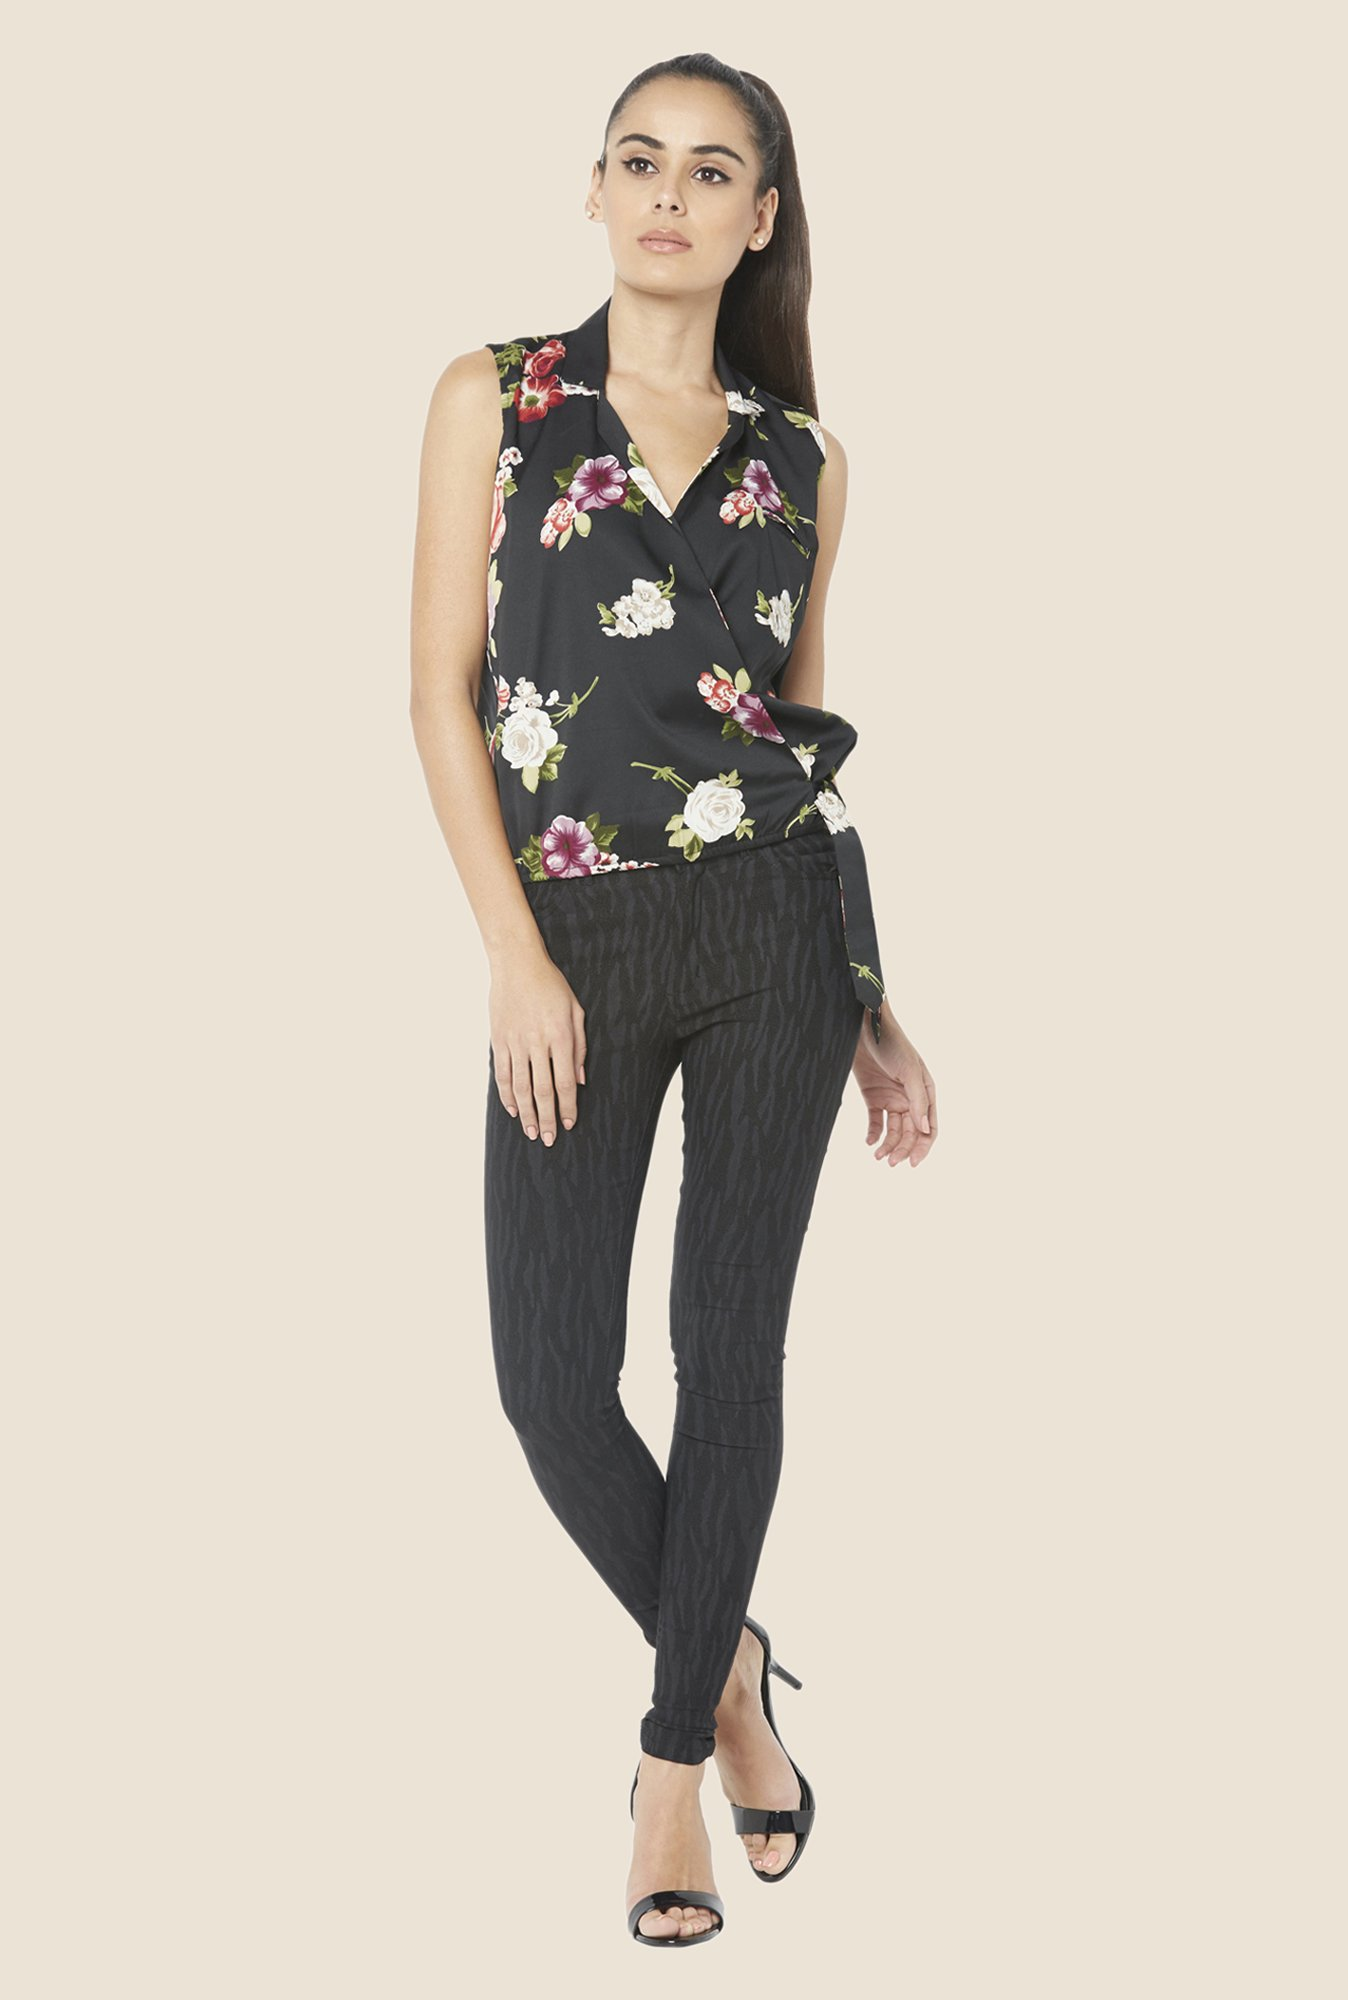 Globus Black Floral Print Sleeveless Top